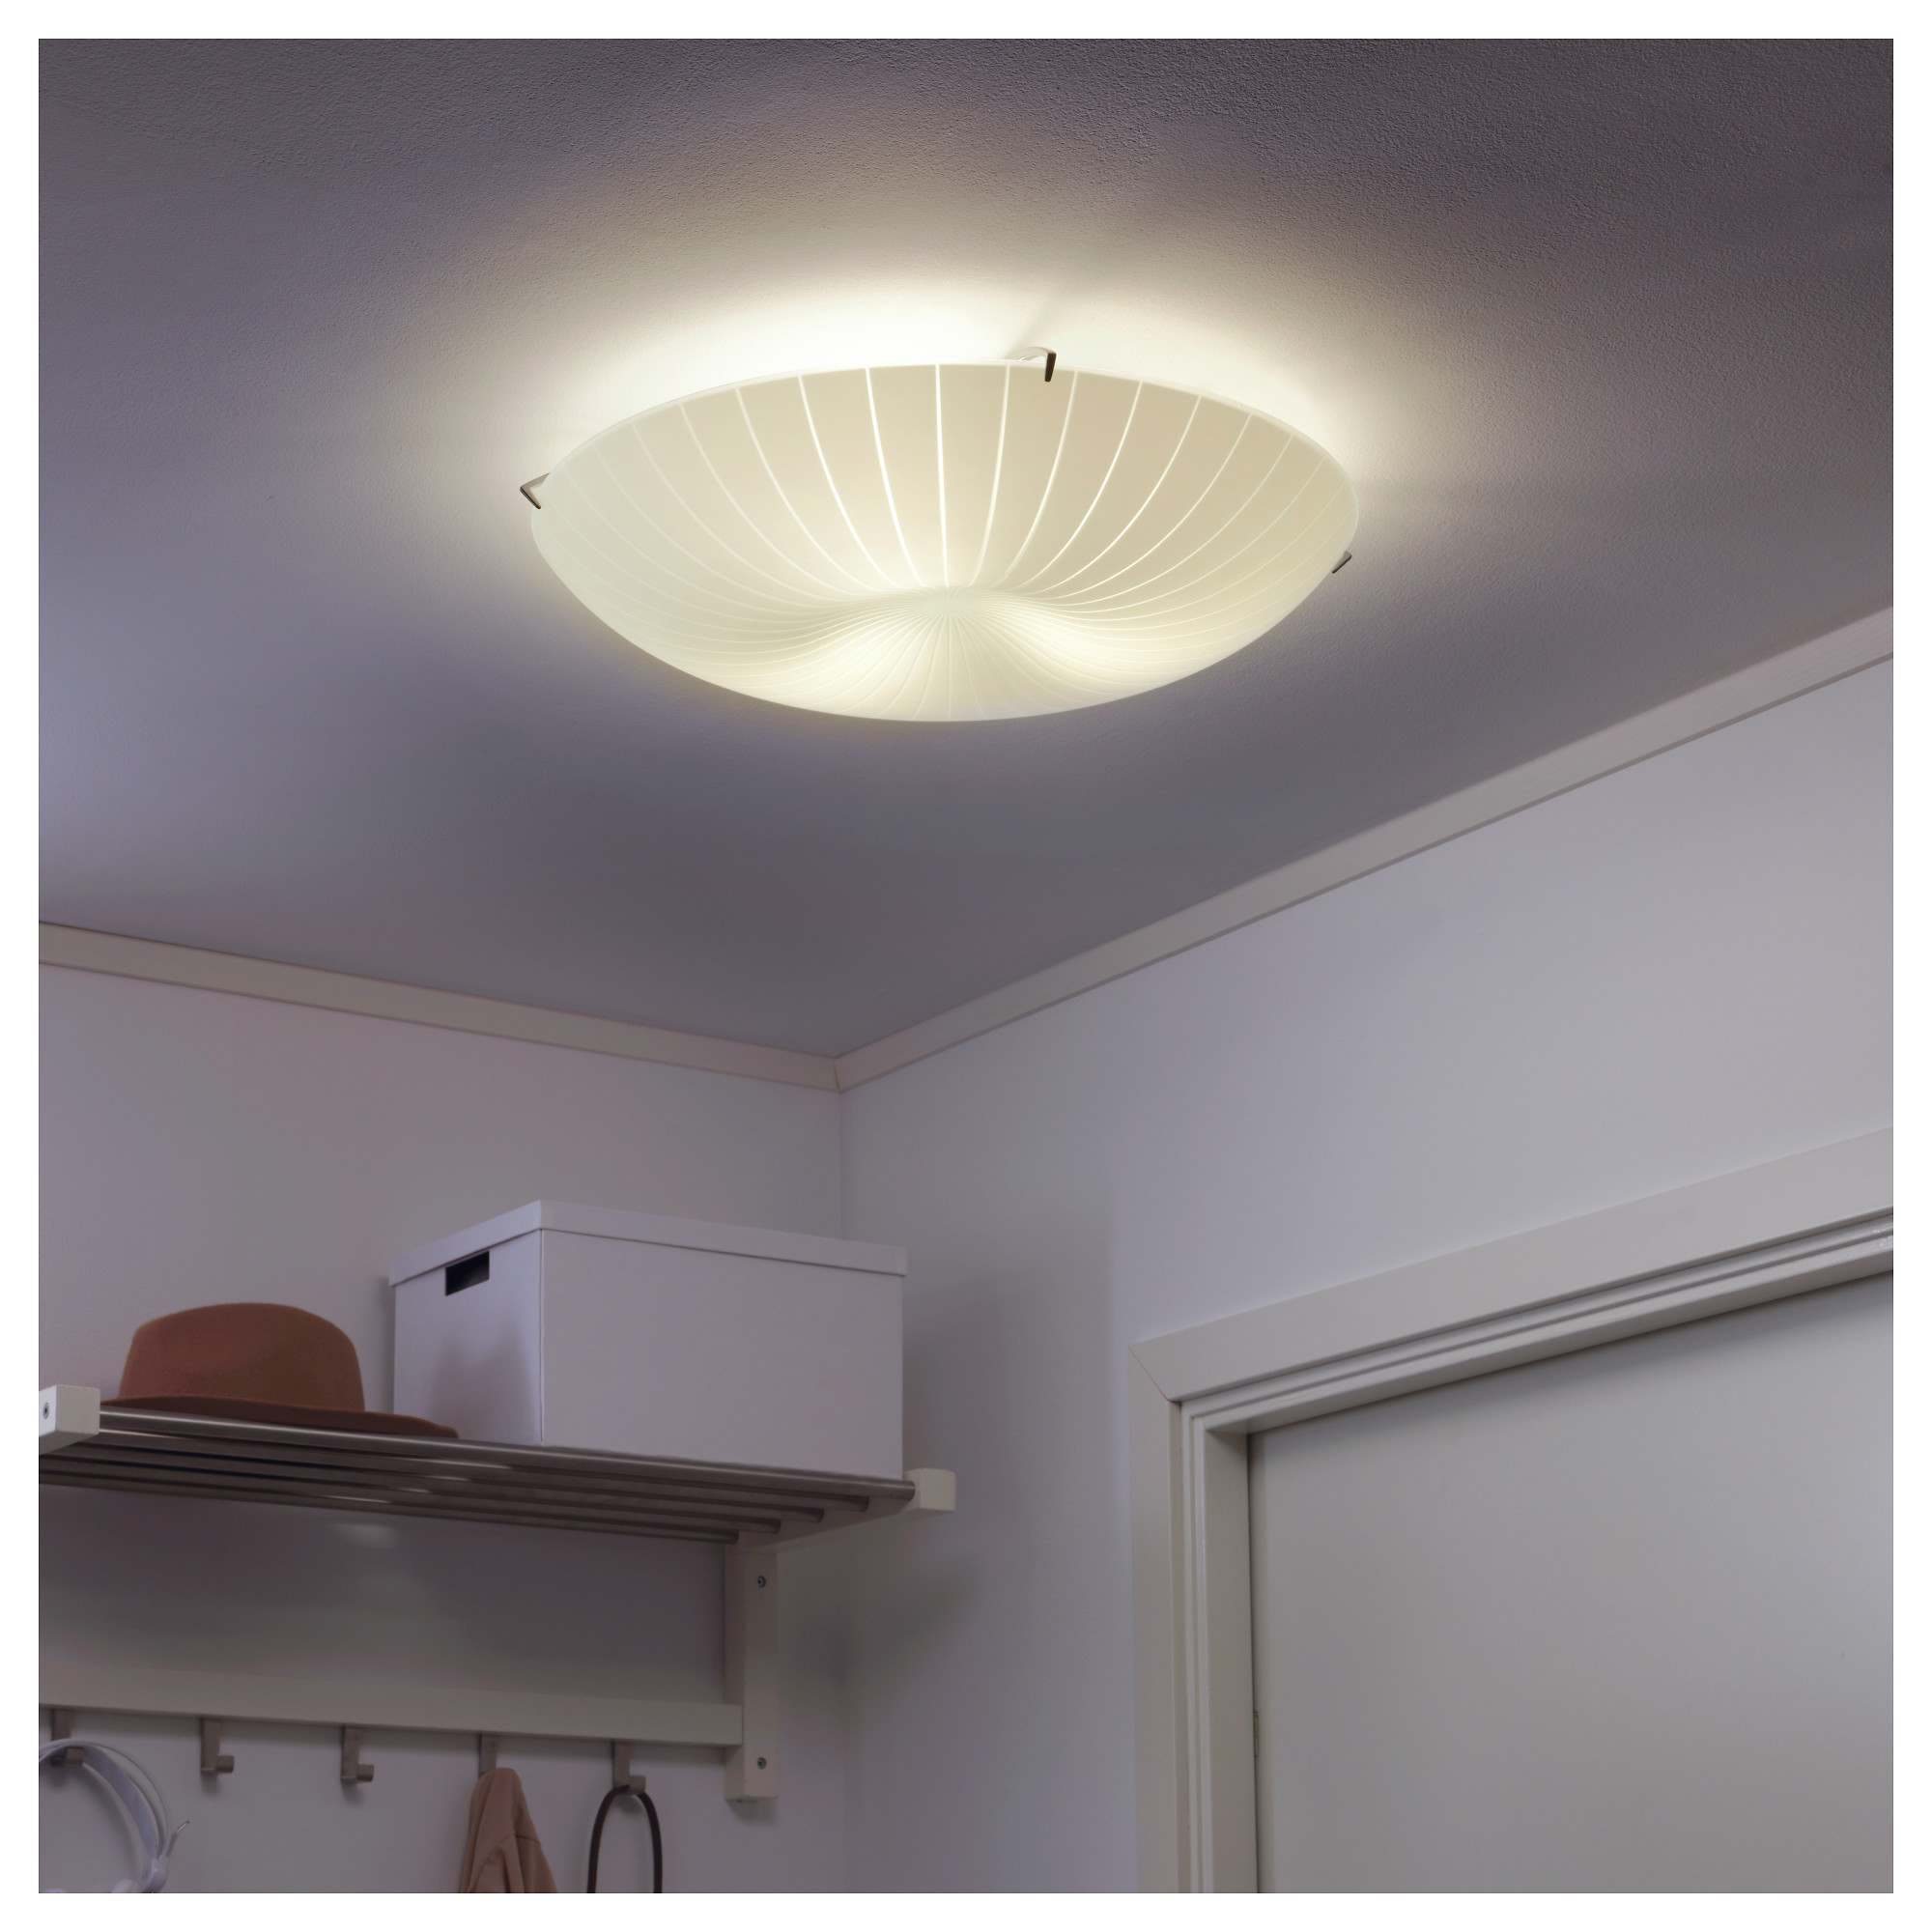 Peachy Calypso Ceiling Lamp Ikea Wiring Cloud Hisonuggs Outletorg